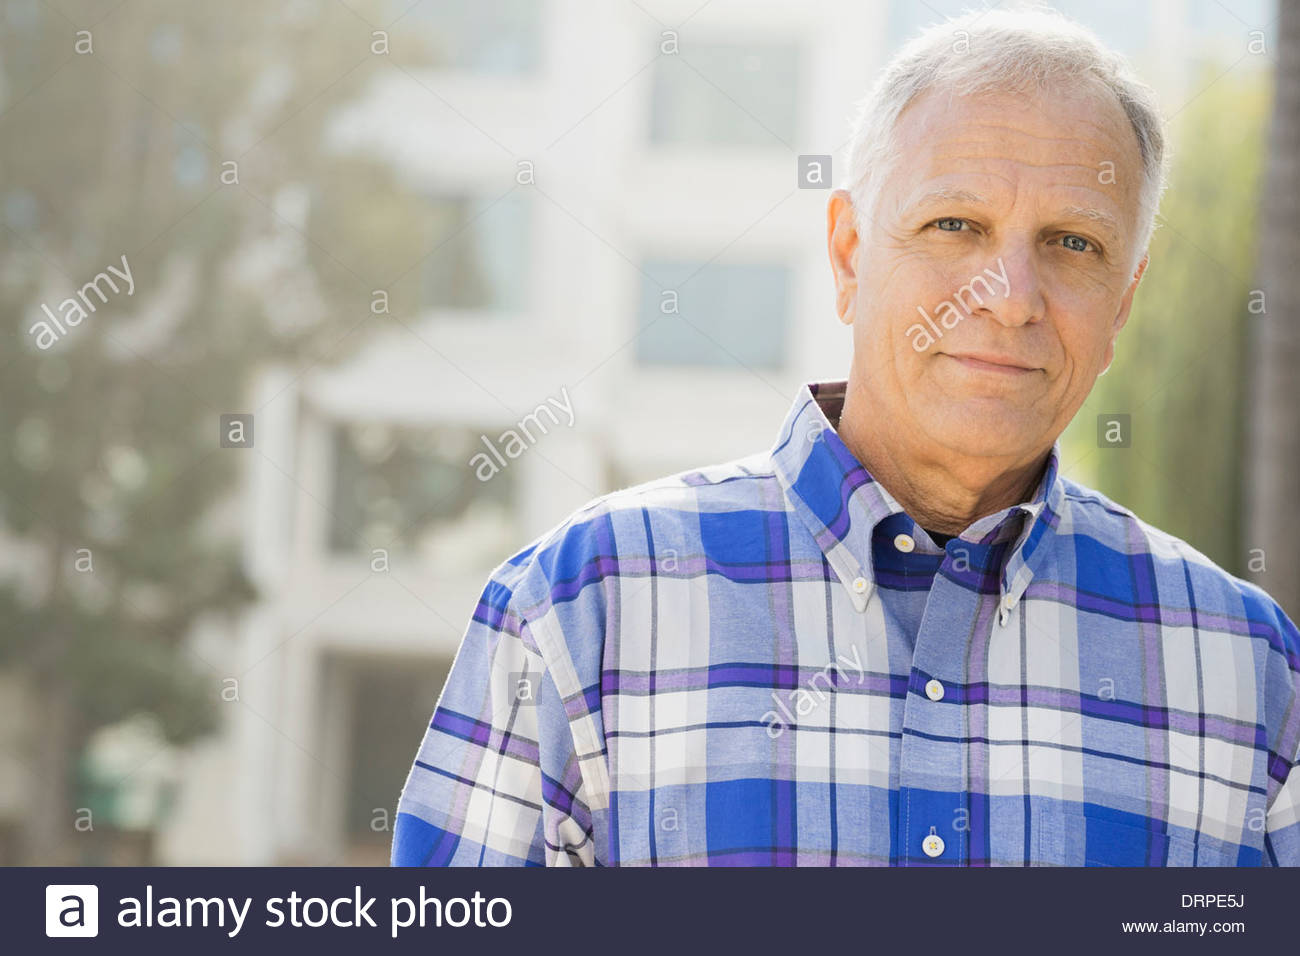 Portrait of senior man outdoors - Stock Image